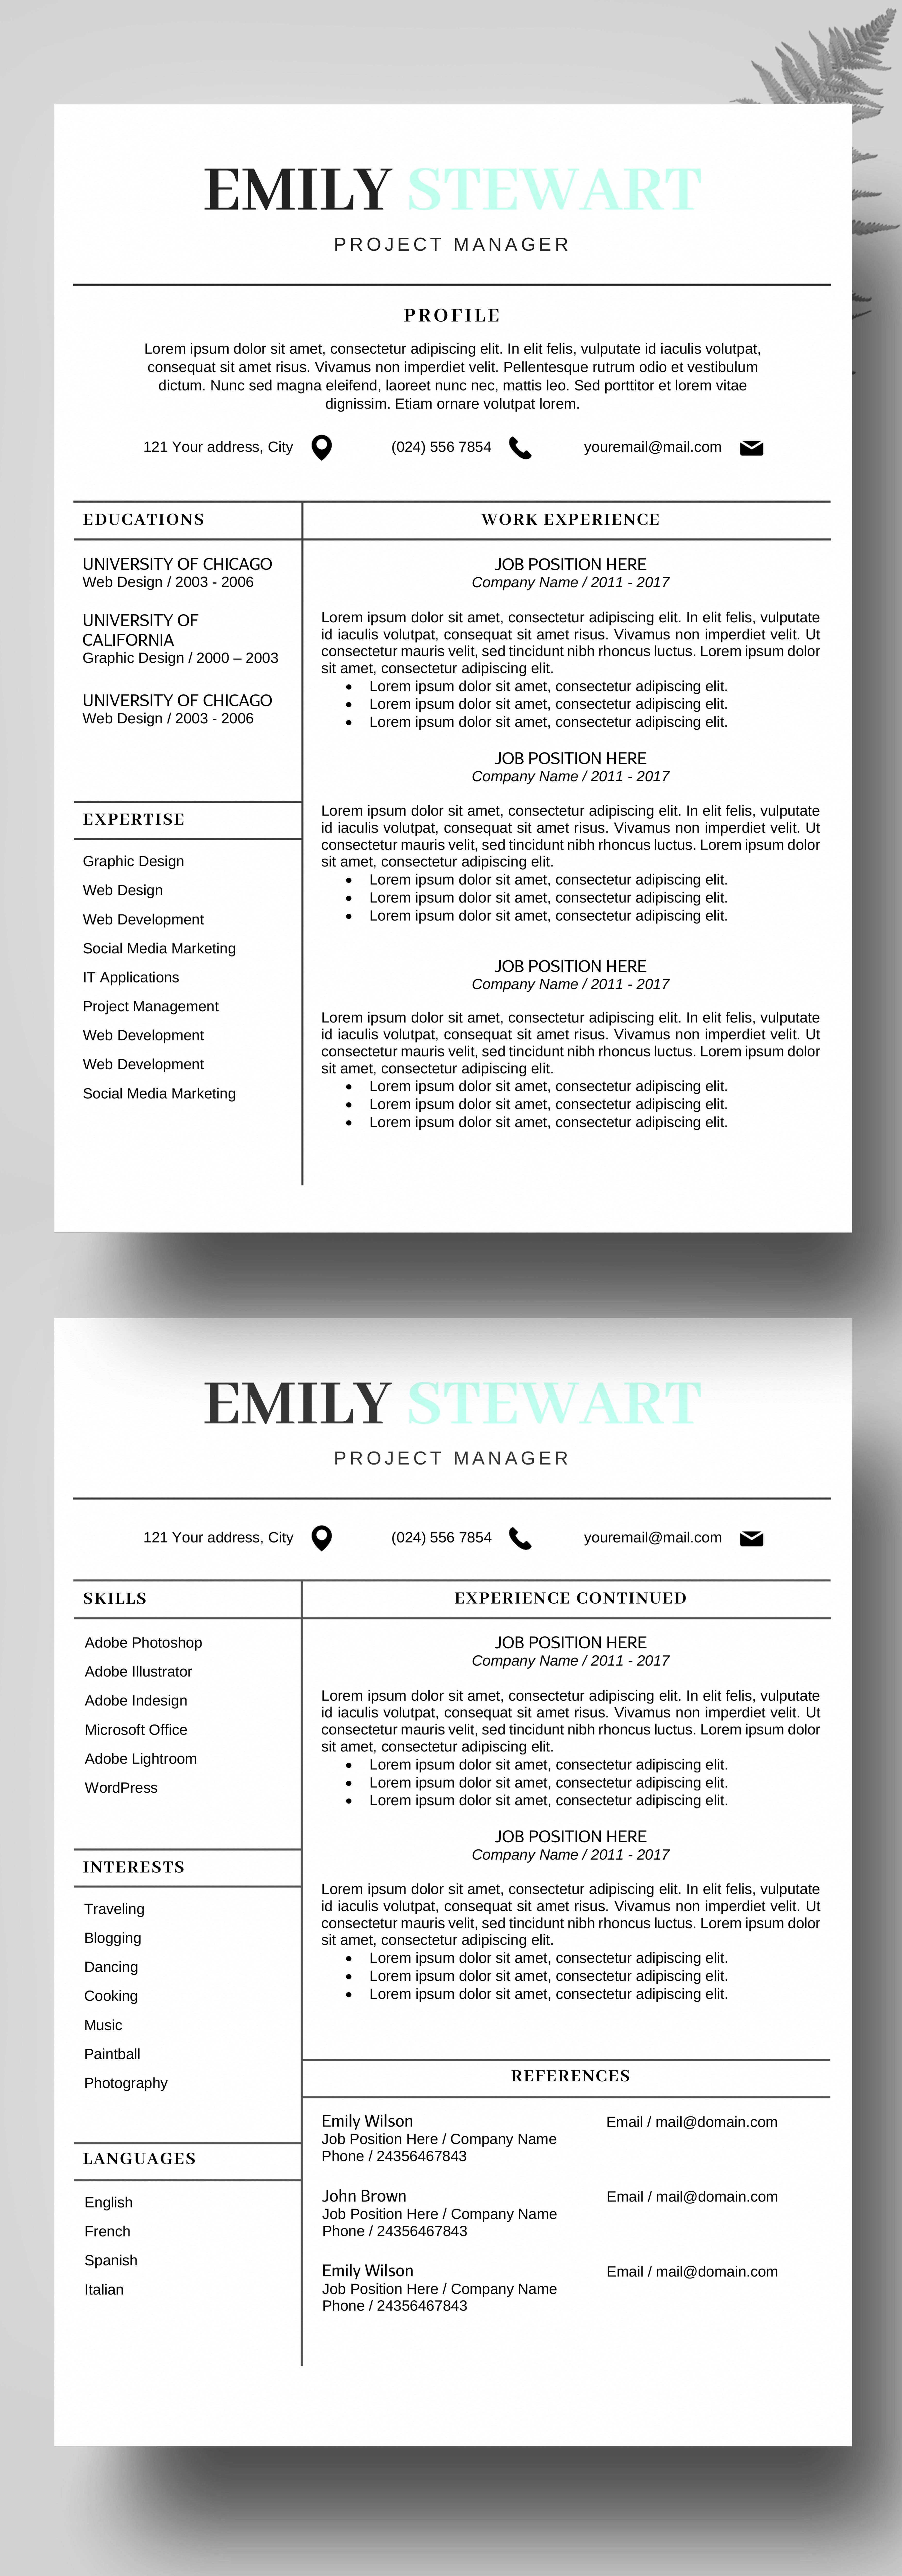 Resume Template, CV Template for MS Word, CV Template, Cover Letter ...